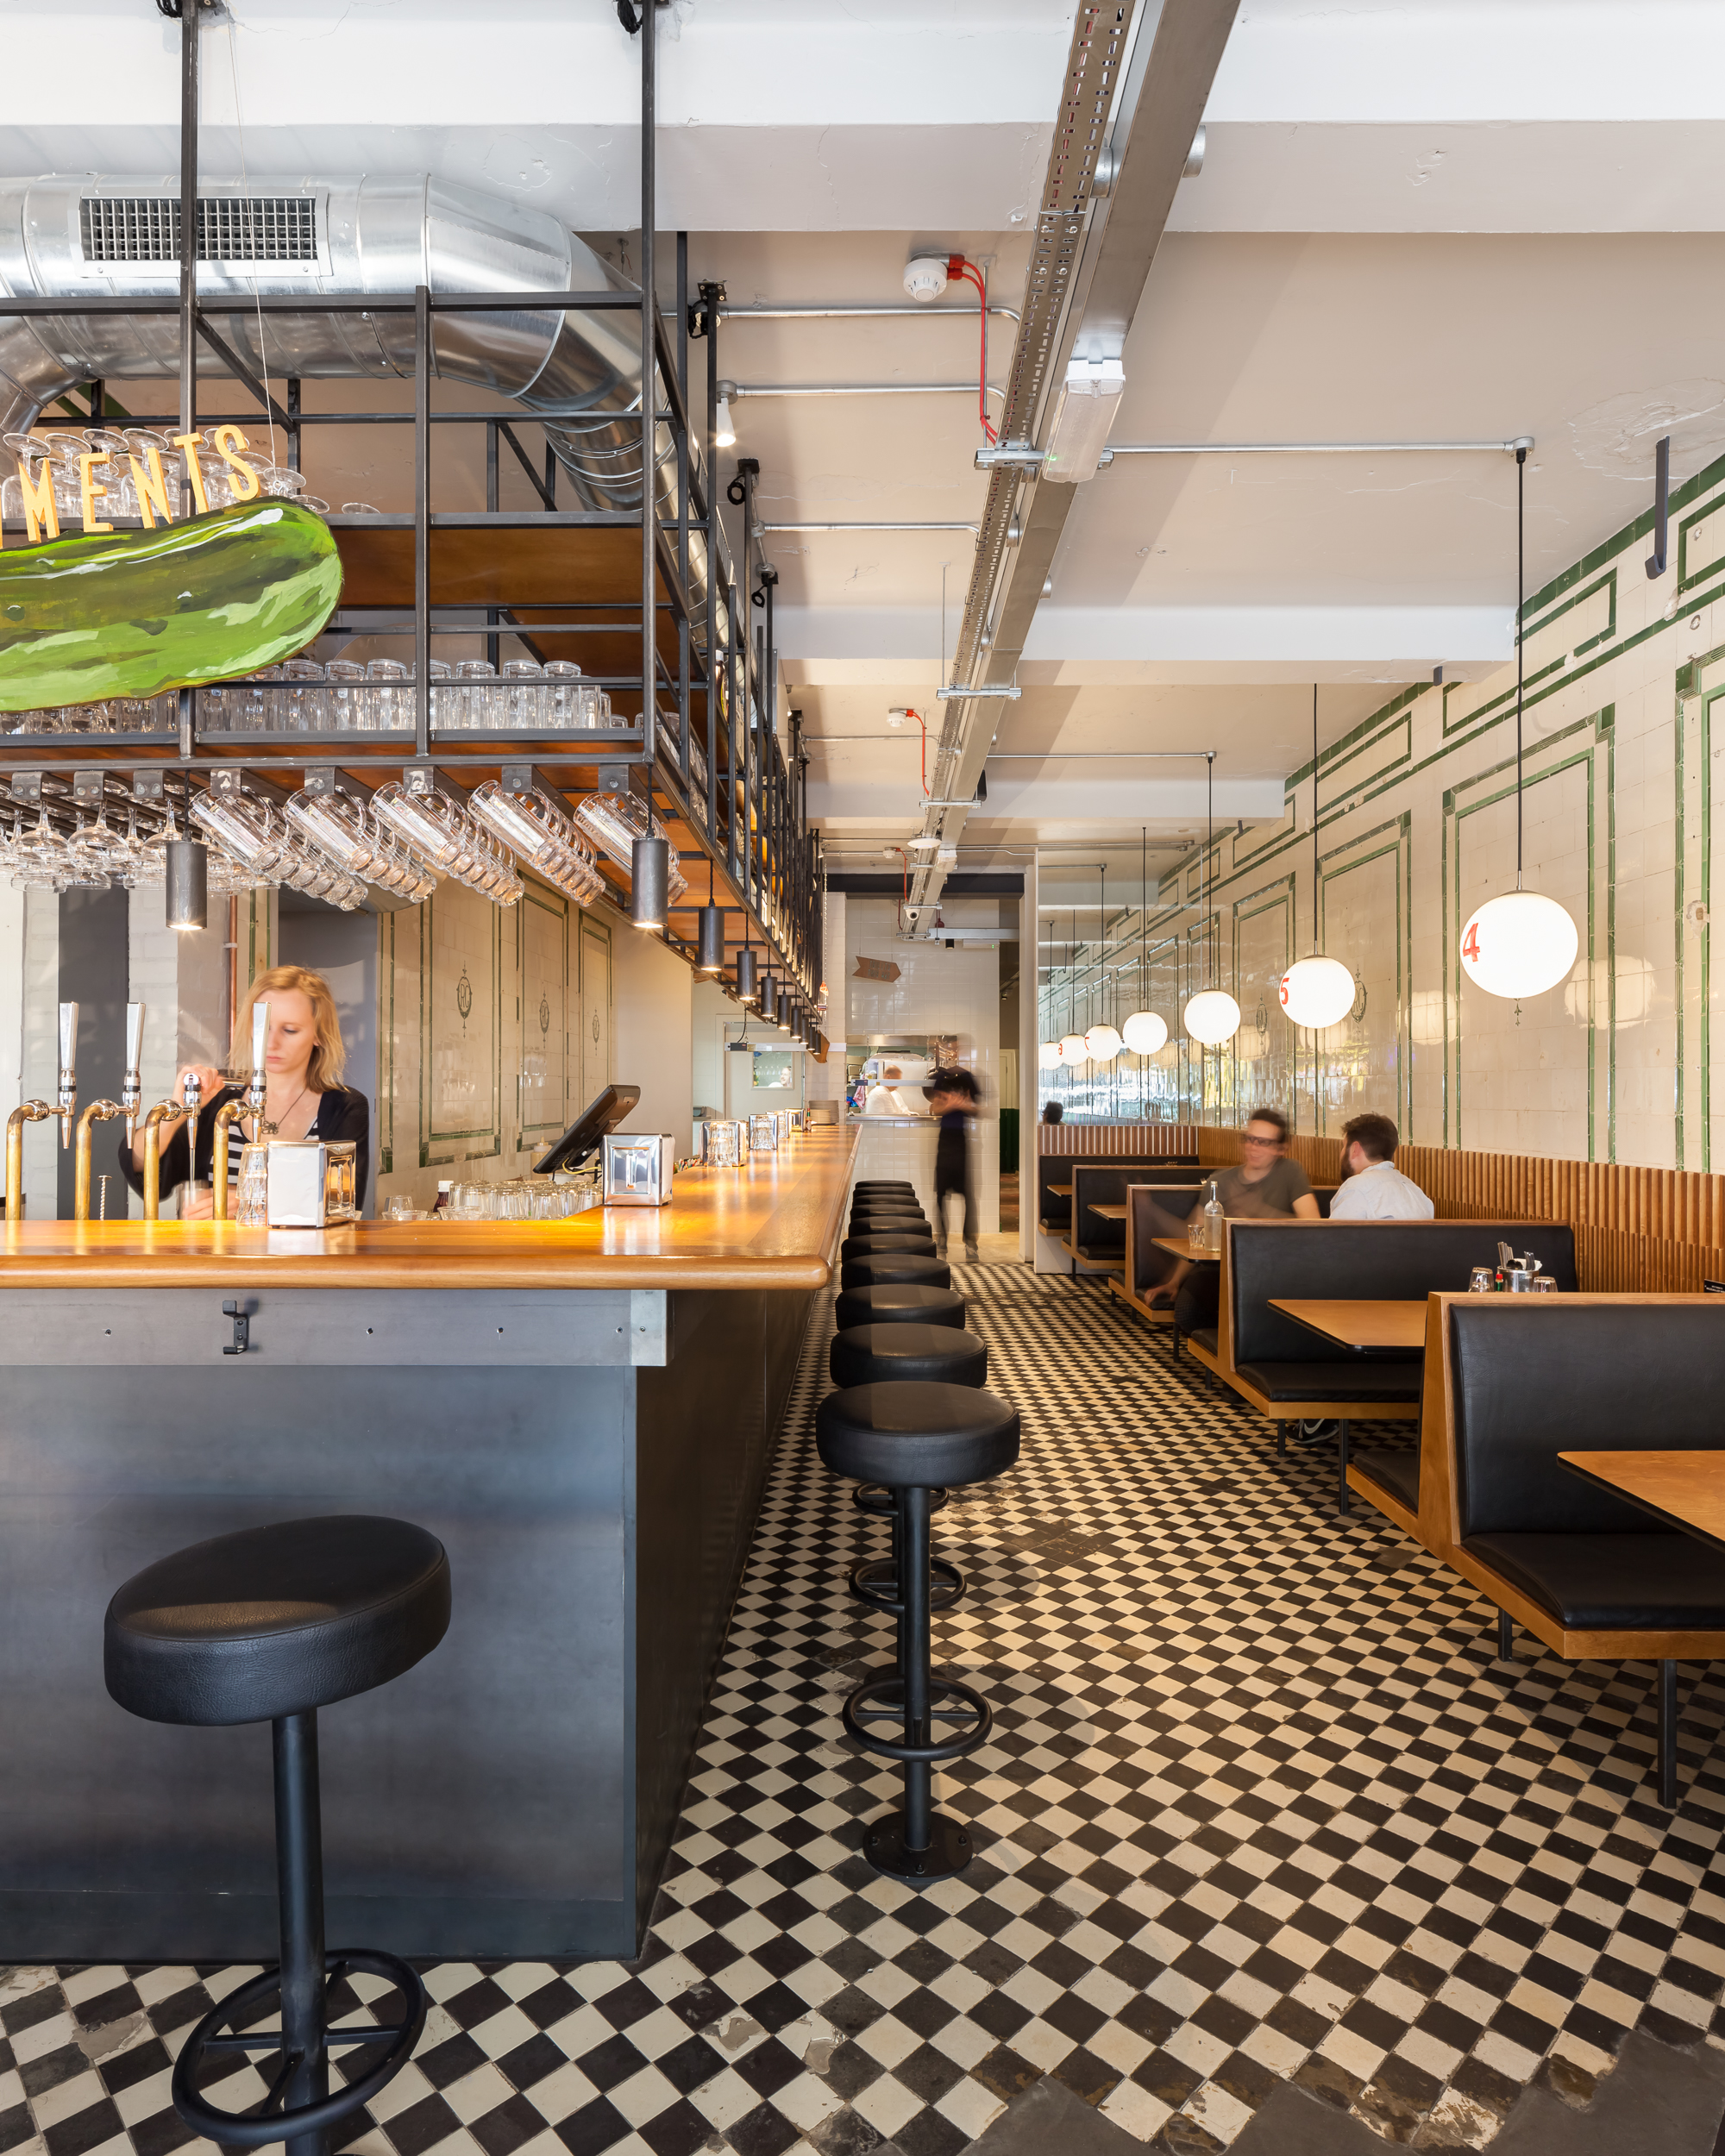 Pano_0490_0499-Edit - MATA_Architects_Montys_Deli.jpg